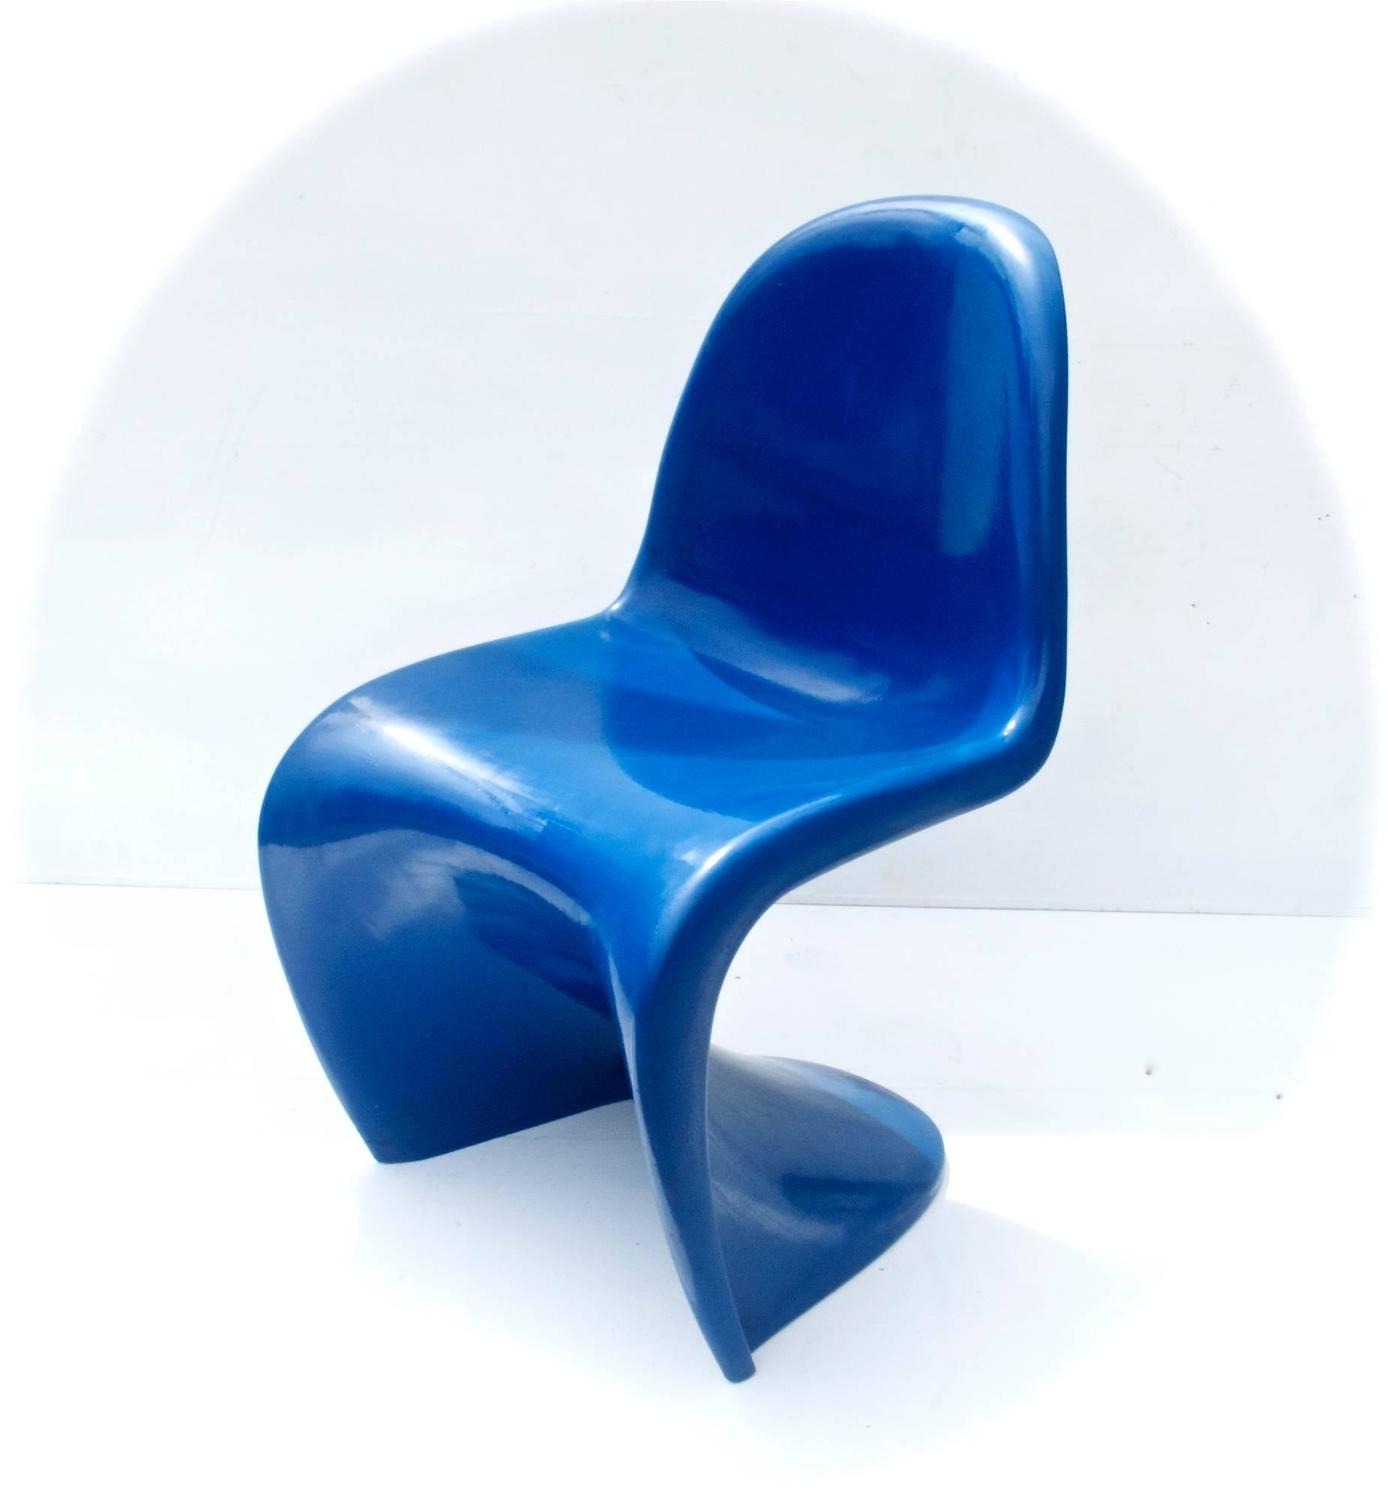 panton s chair cover rentals warner robins ga v quots quot for sale at 1stdibs